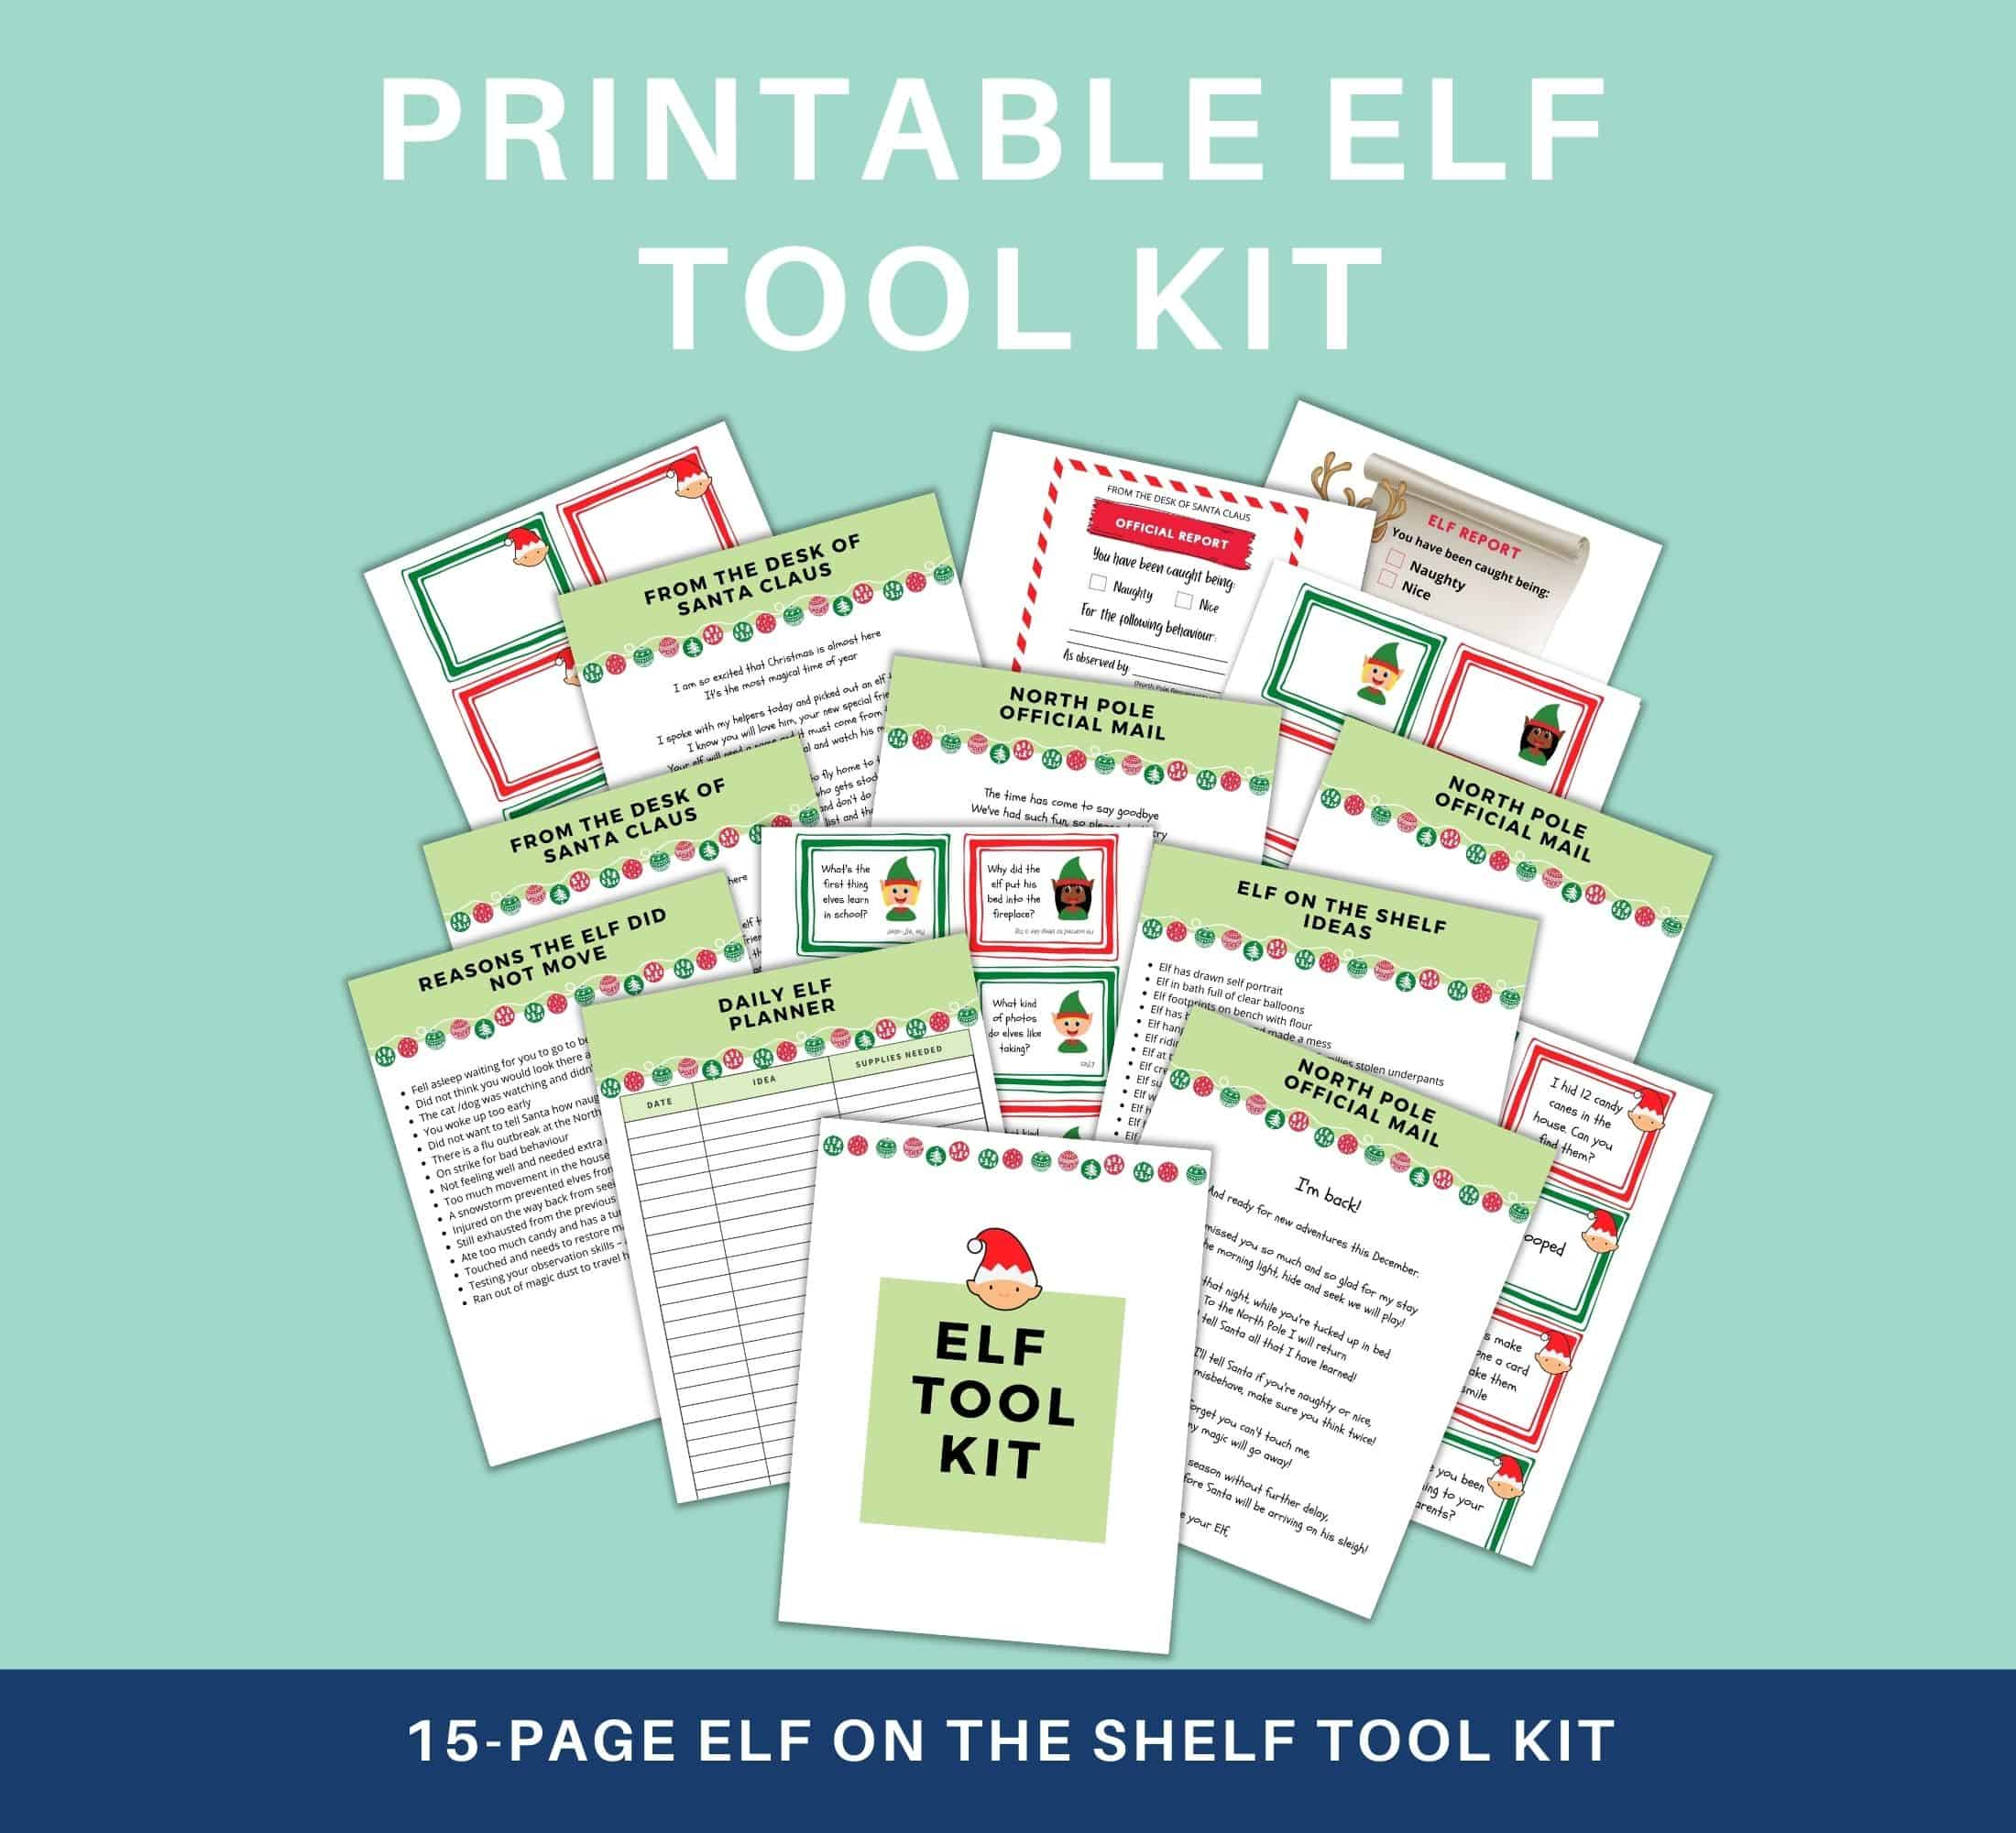 Elf on the shelf tool kit